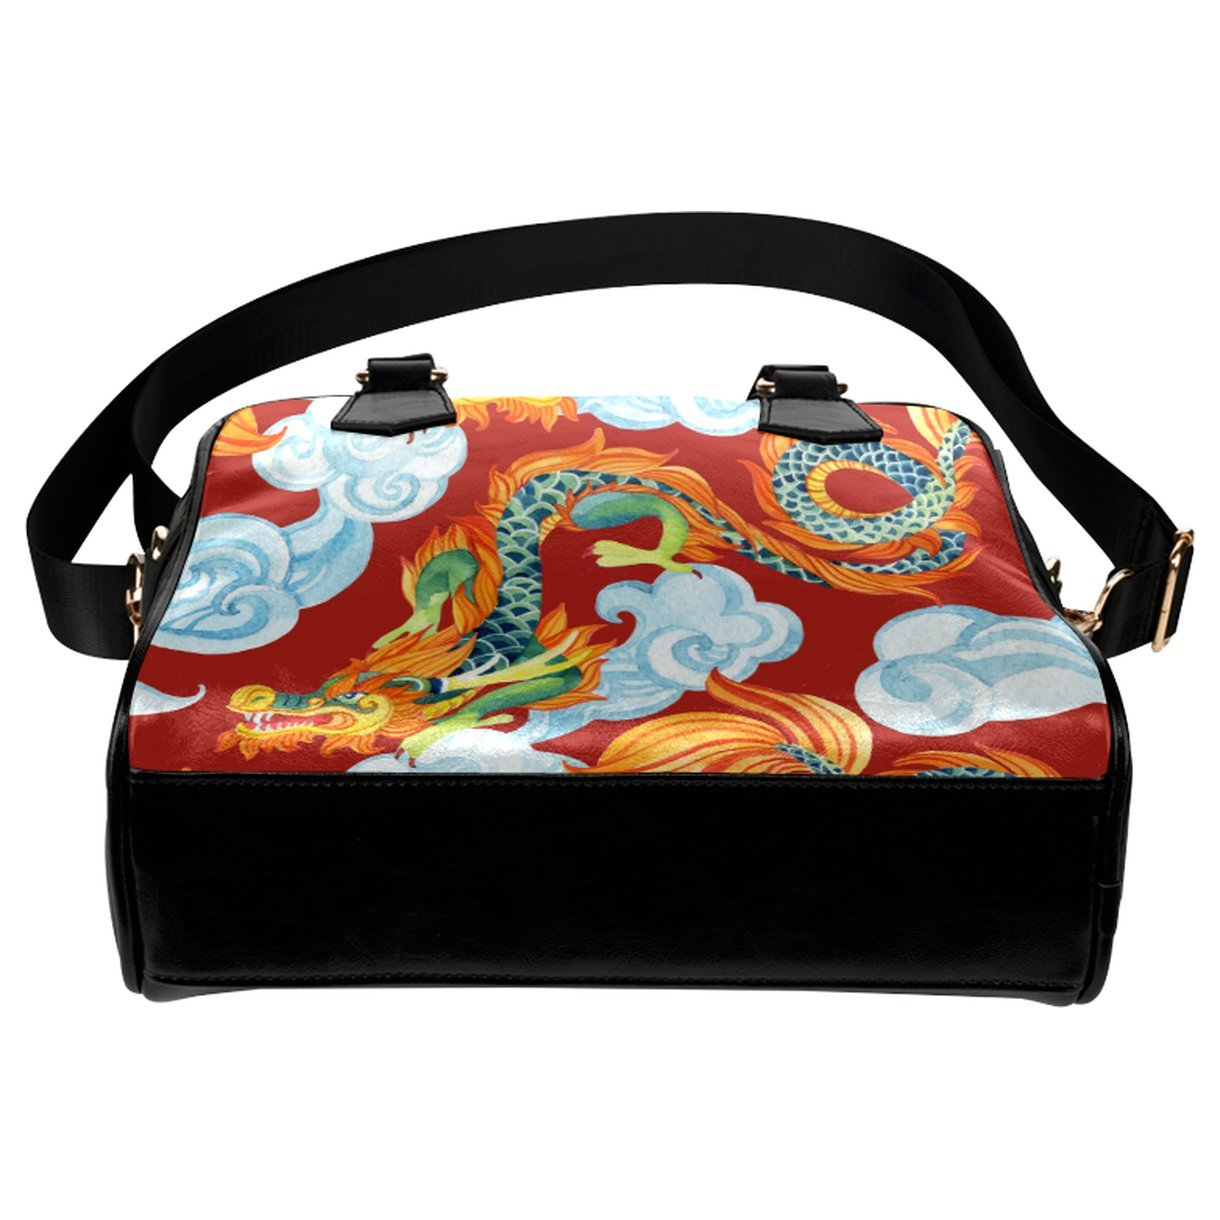 CASECOCO Chinese Dragon Red Womens PU Leather Purse Handbag Shoulder Bag